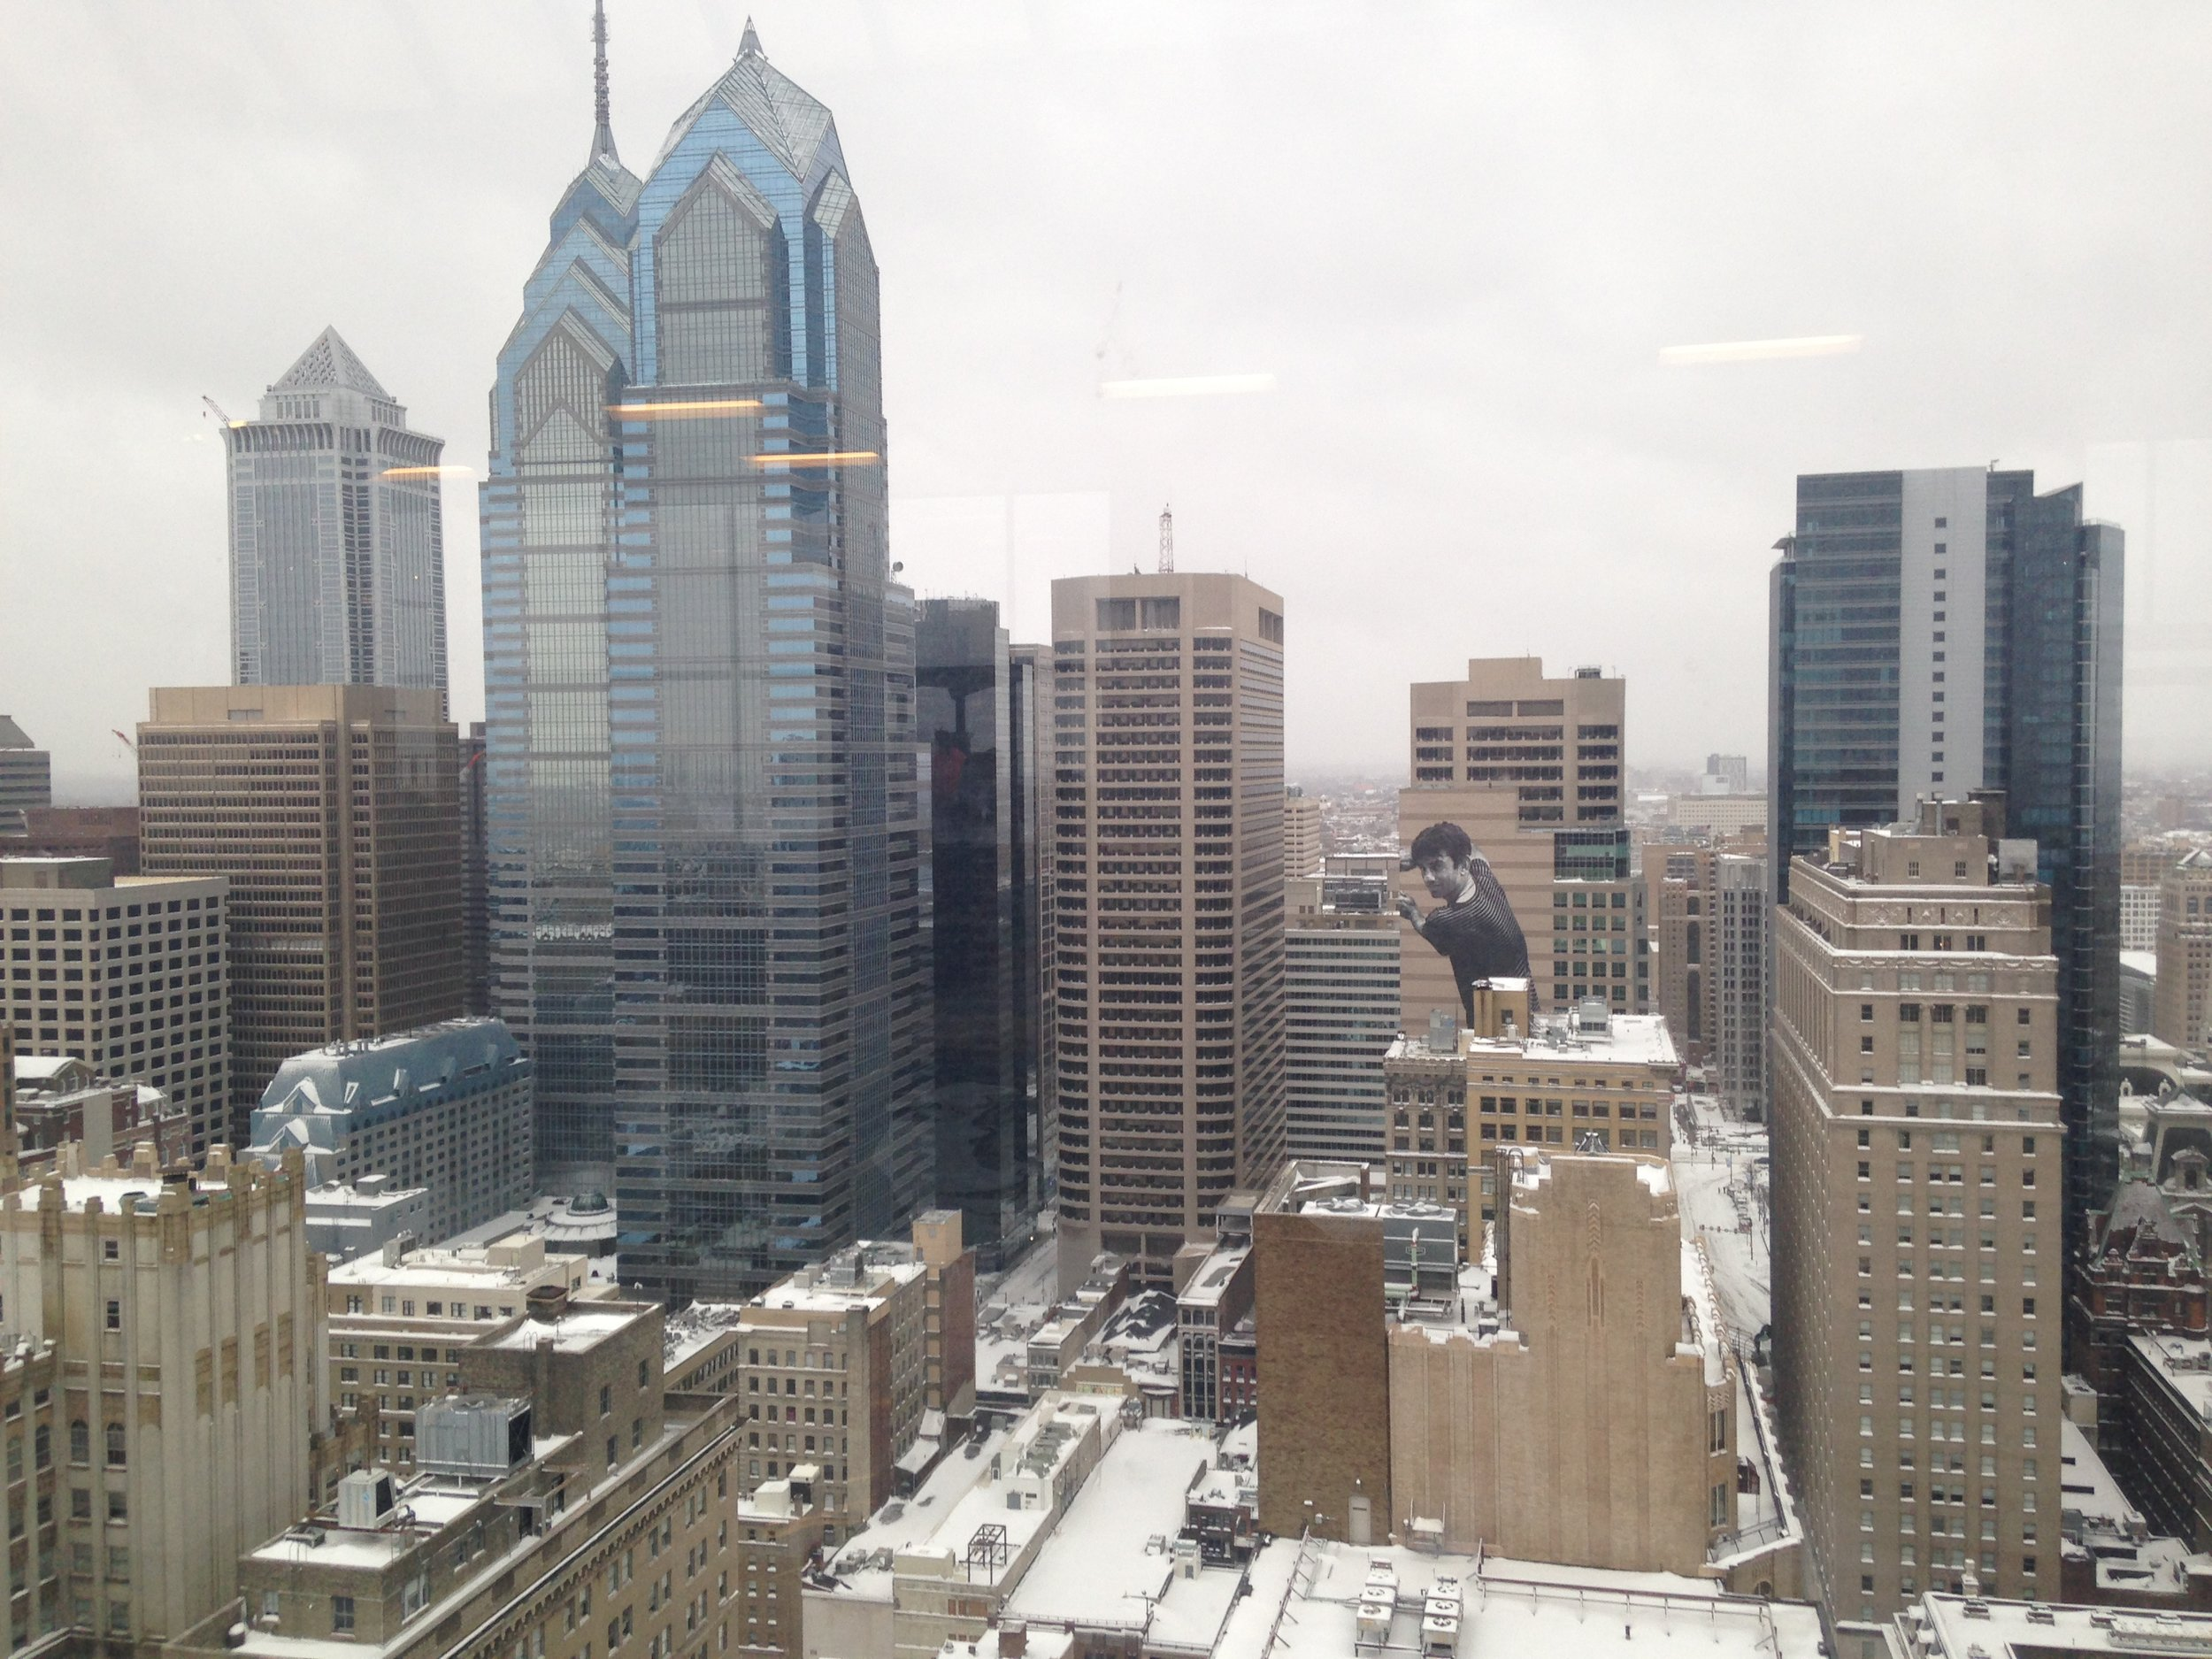 Fine snowy views of the city skyline from our residents' lounge